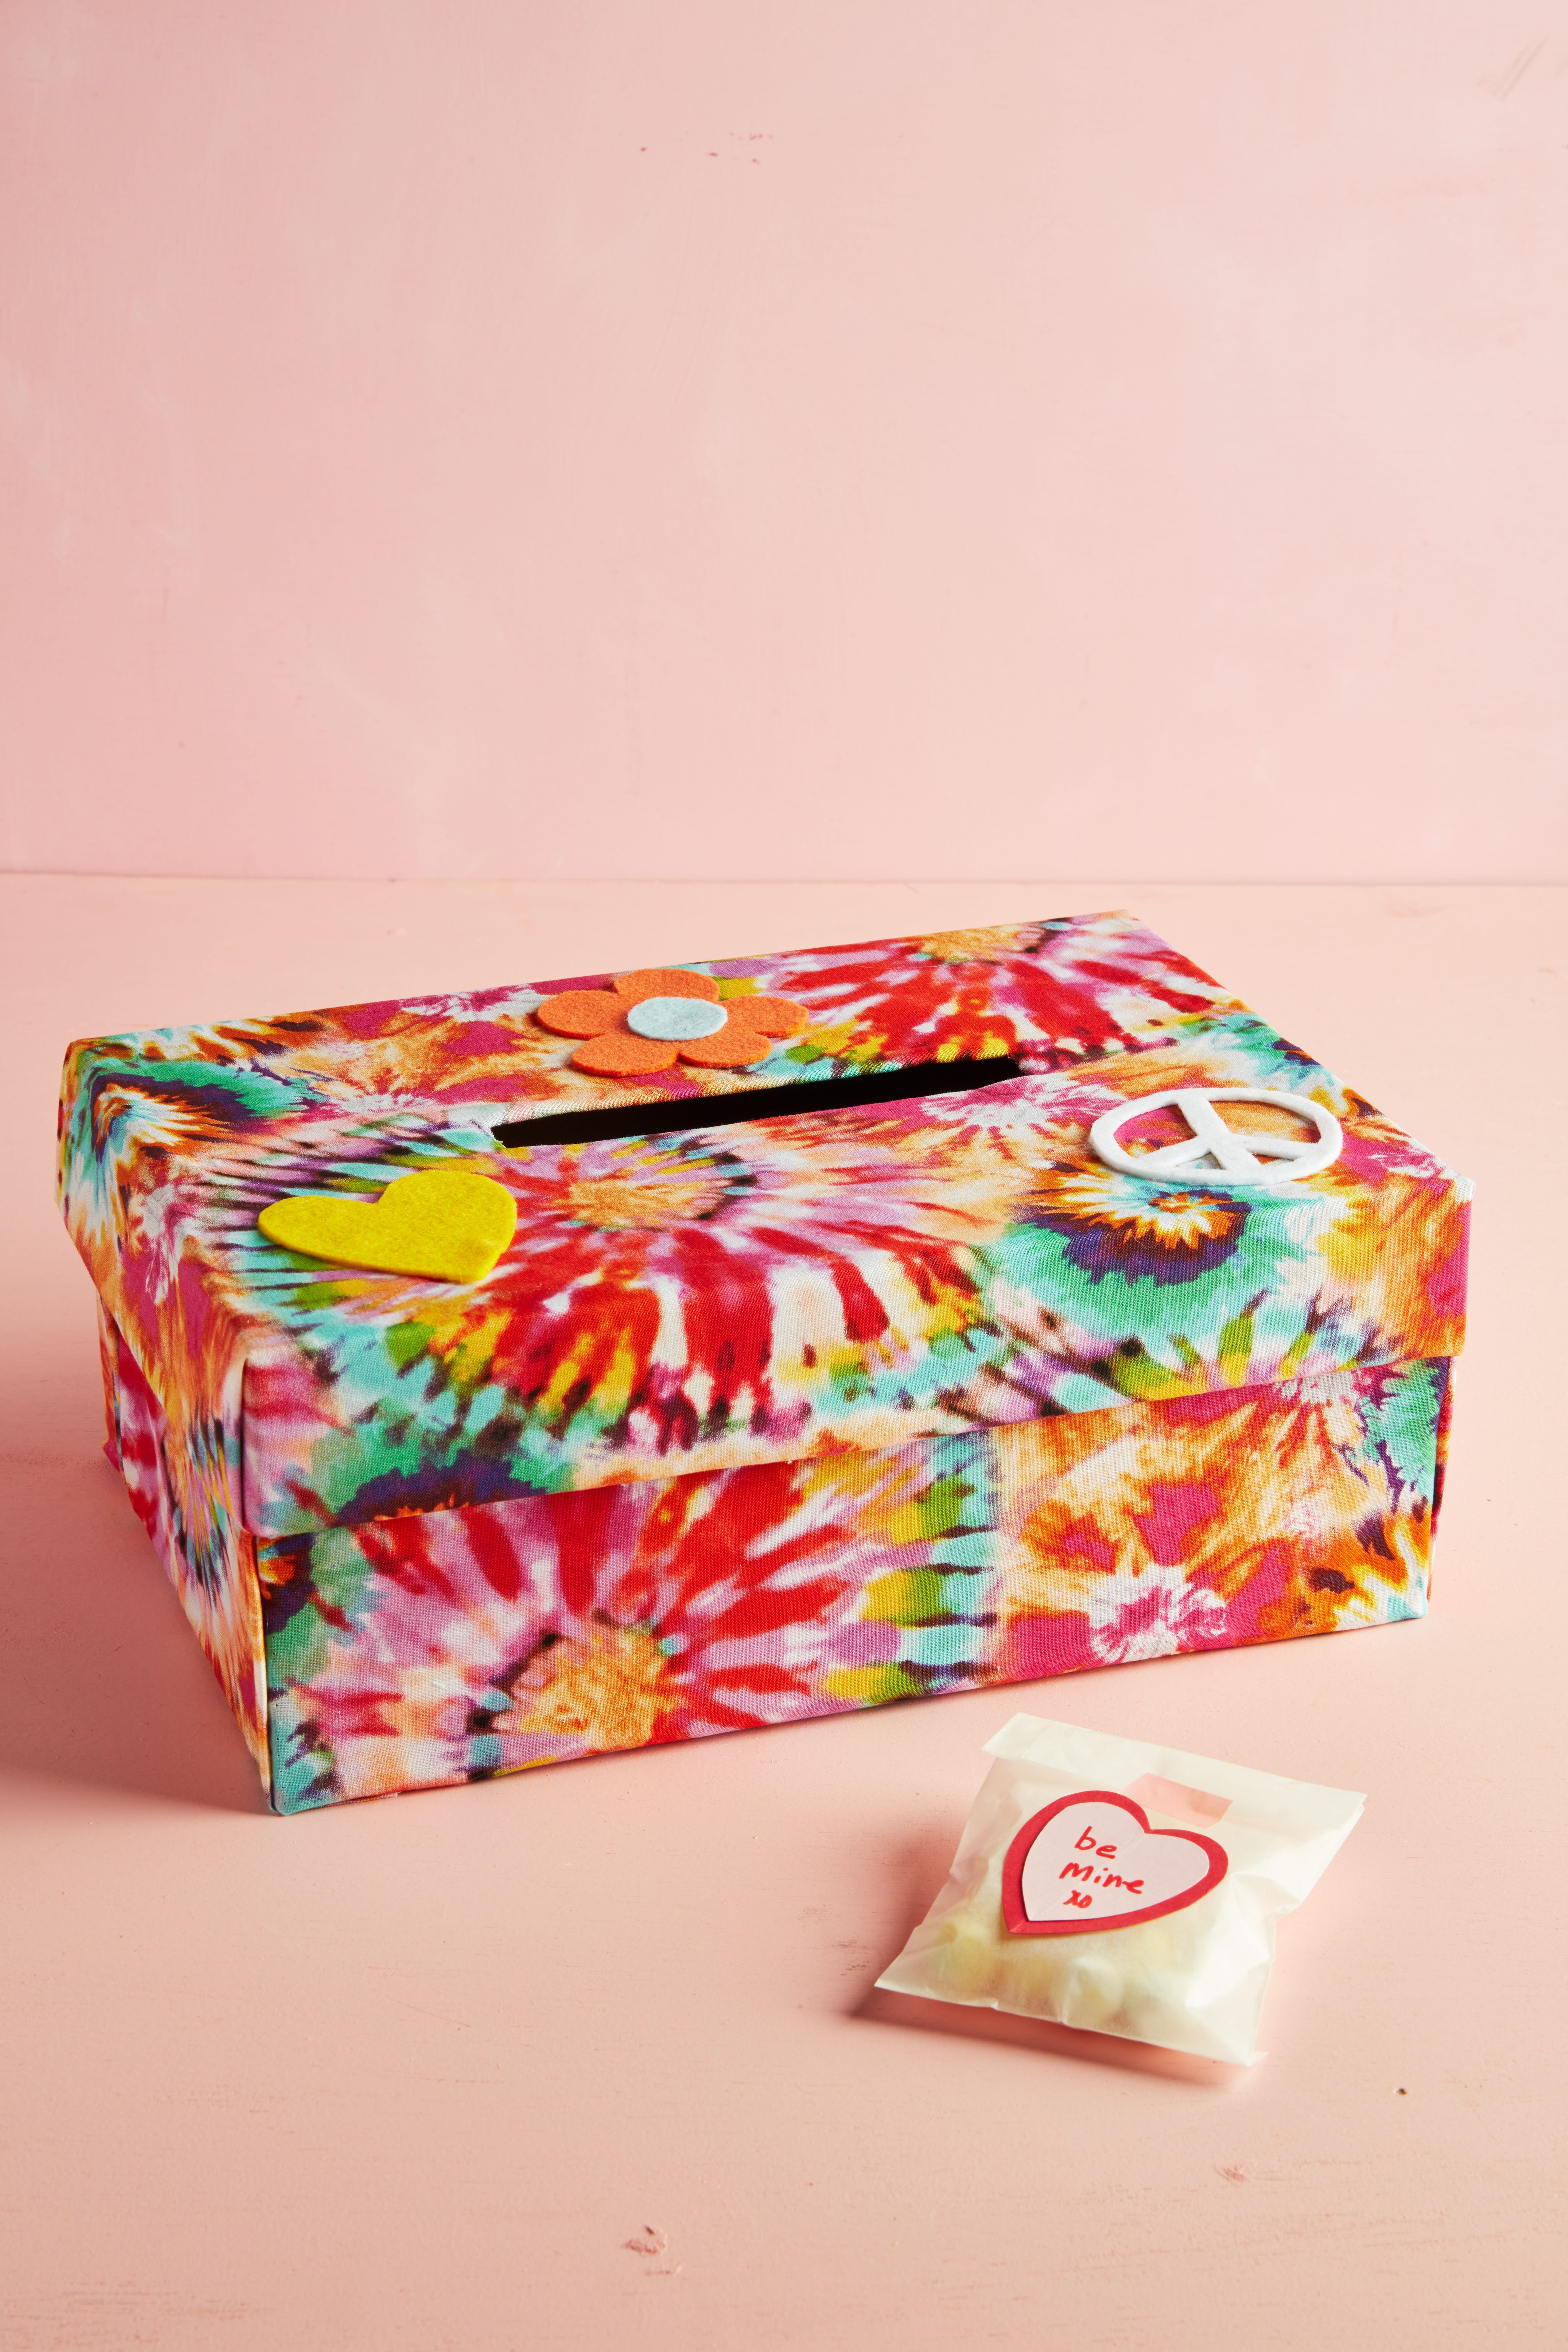 4 paper crafting packaging paper mache boxes ready to decorate heart gift box candy containers party favor box valentine/'s day